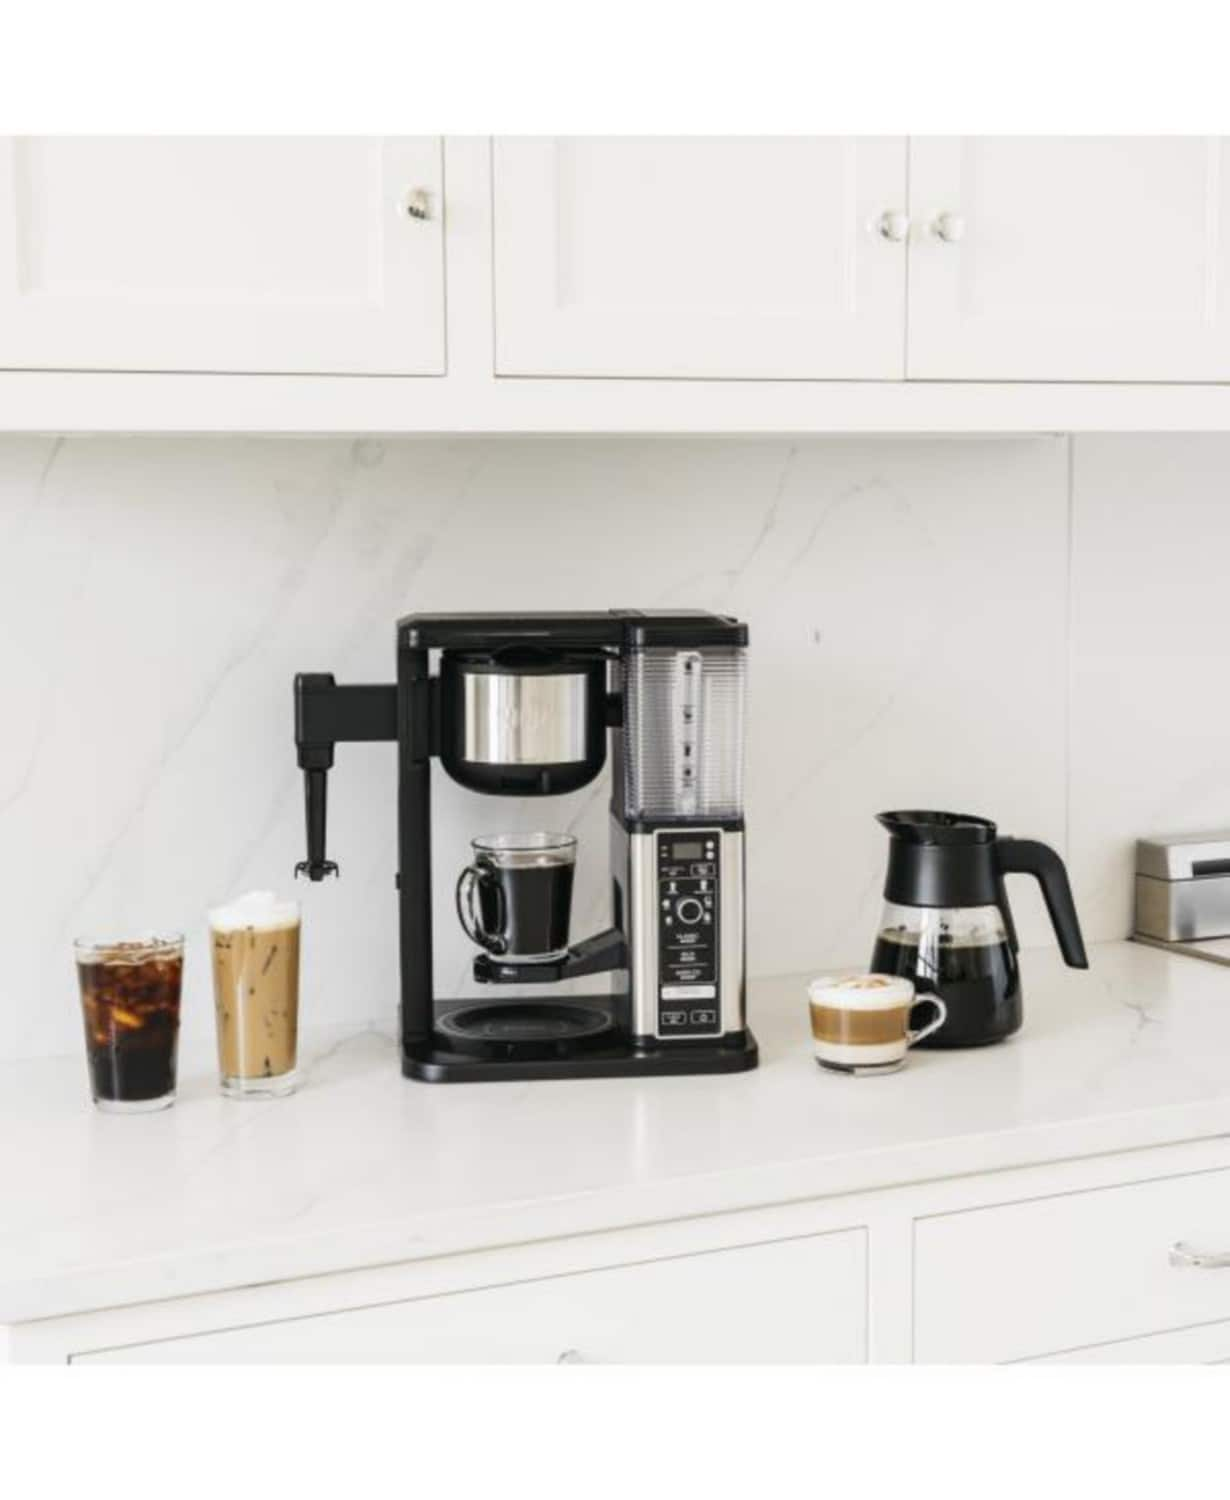 Ninja Specialty Coffee Maker with 50 Oz. Glass Carafe for $66.93